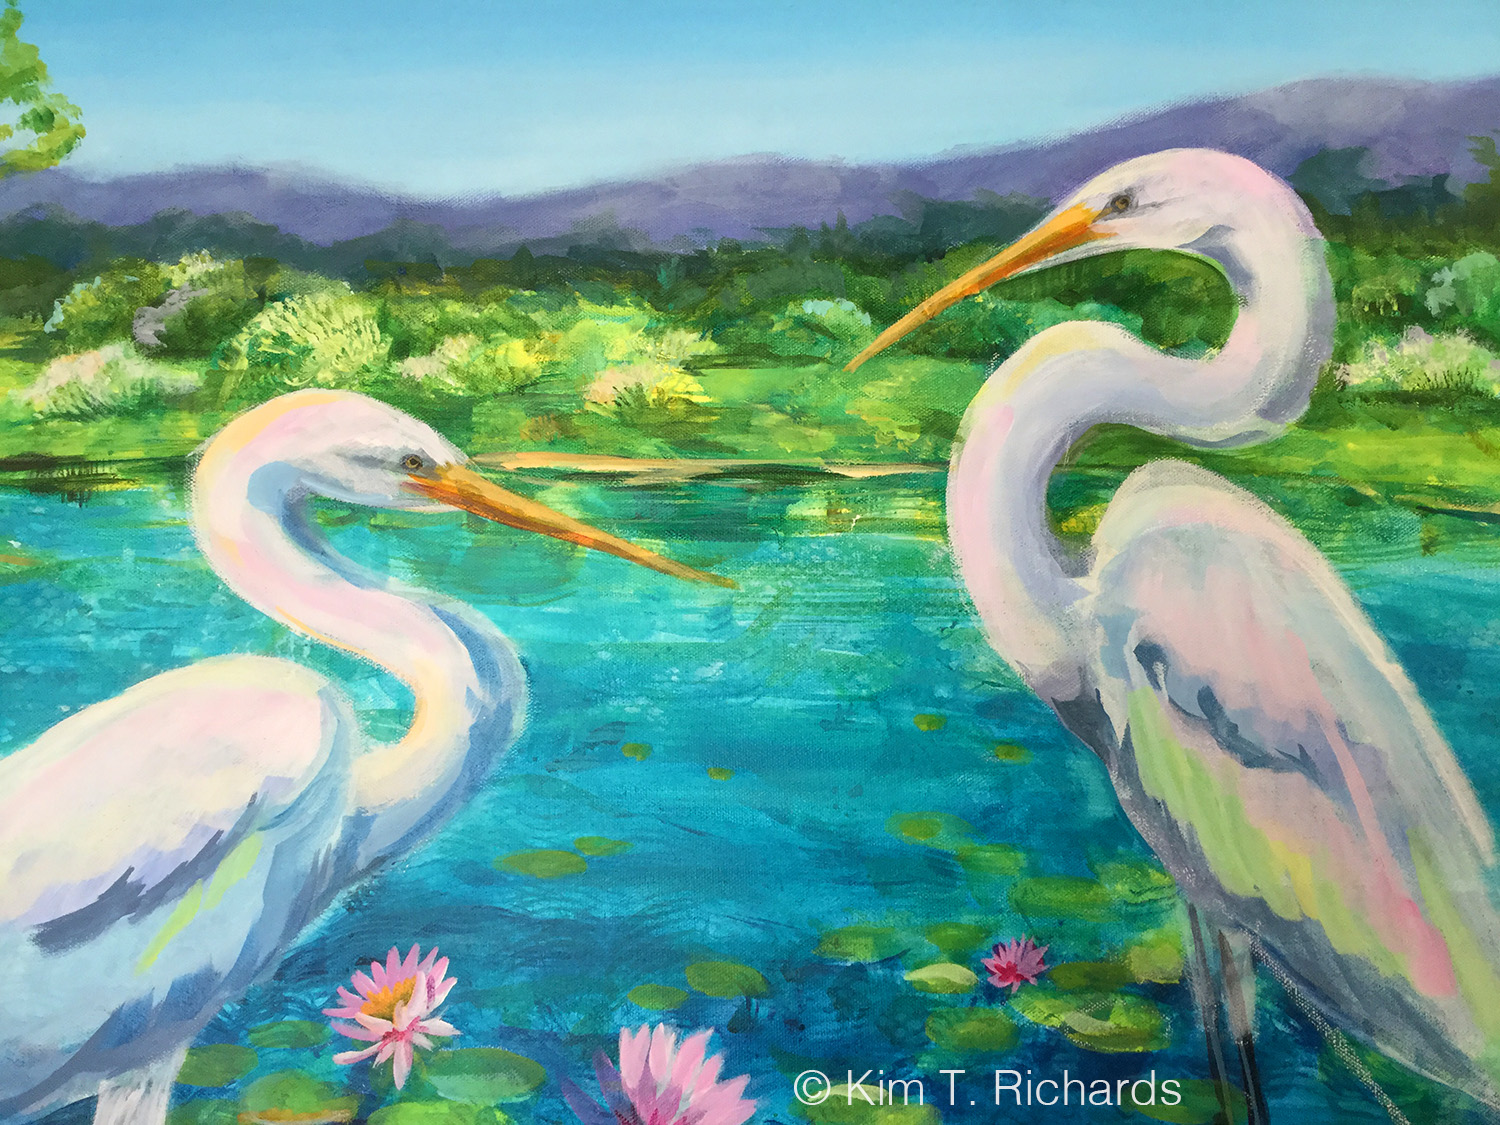 Detail of a new Egret painting, acrylic on canvas, work in progress. © Kim T. Richards